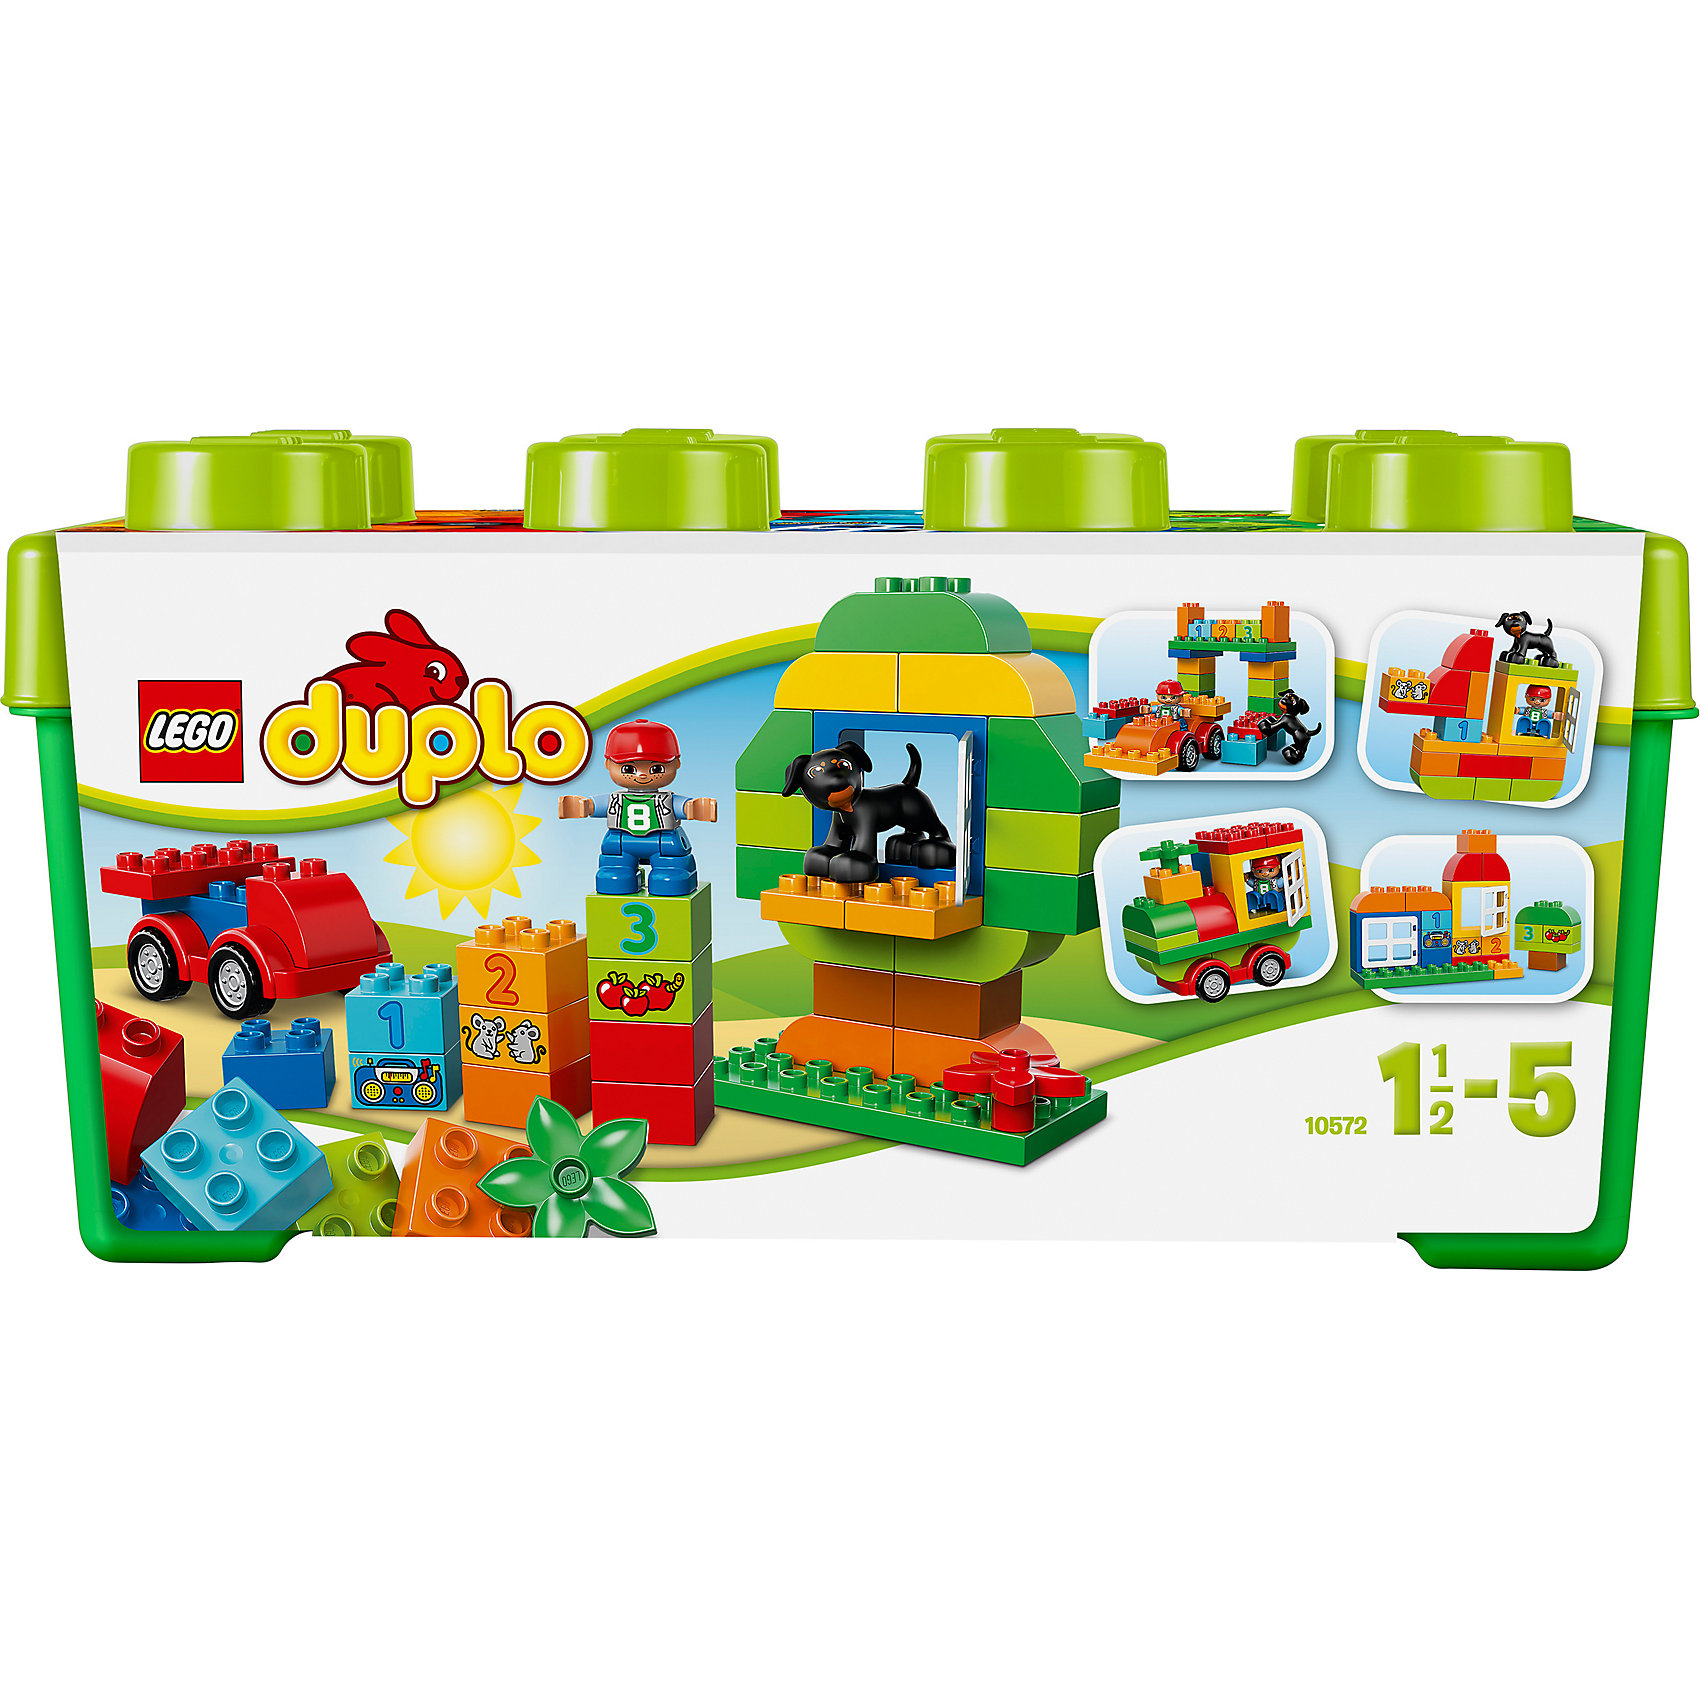 LEGO LEGO DUPLO 10572: Механик lego education preschool 9076 набор с трубками duplo